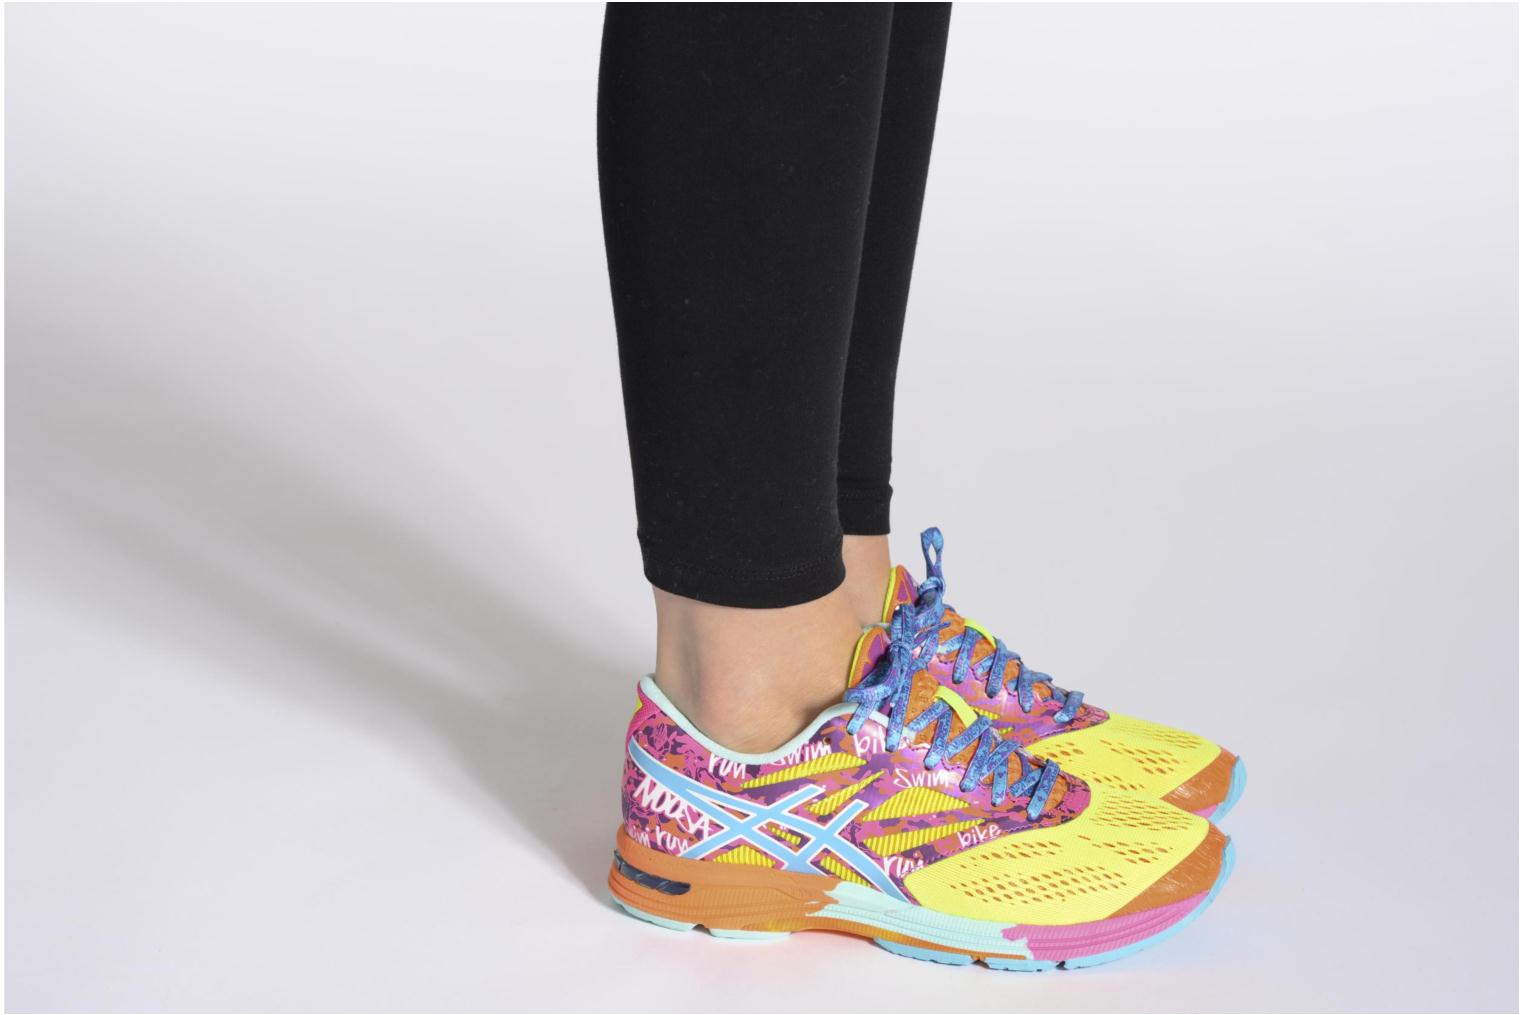 Lady Gel-Noosa Tri 10 Flash coral/flash yellow/ice blue